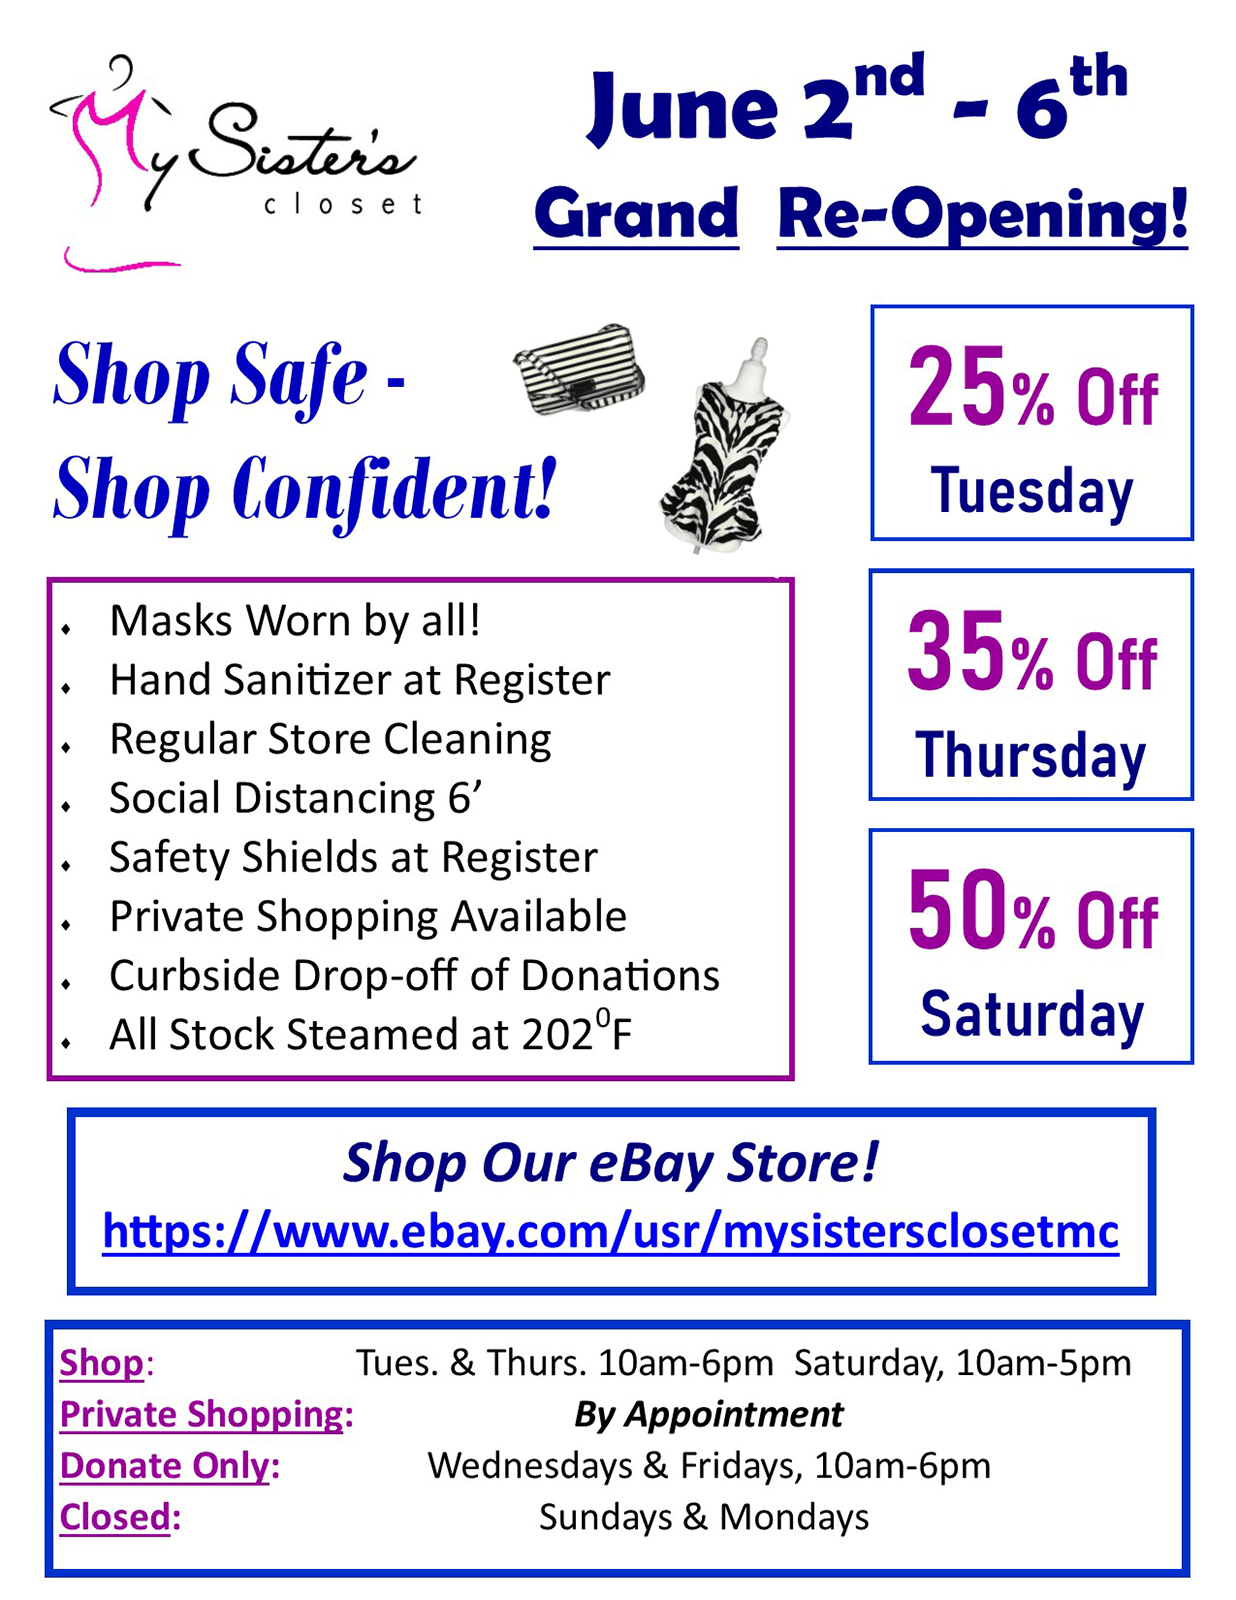 My Sister's Closet - Reopening Sale June 2 - 6